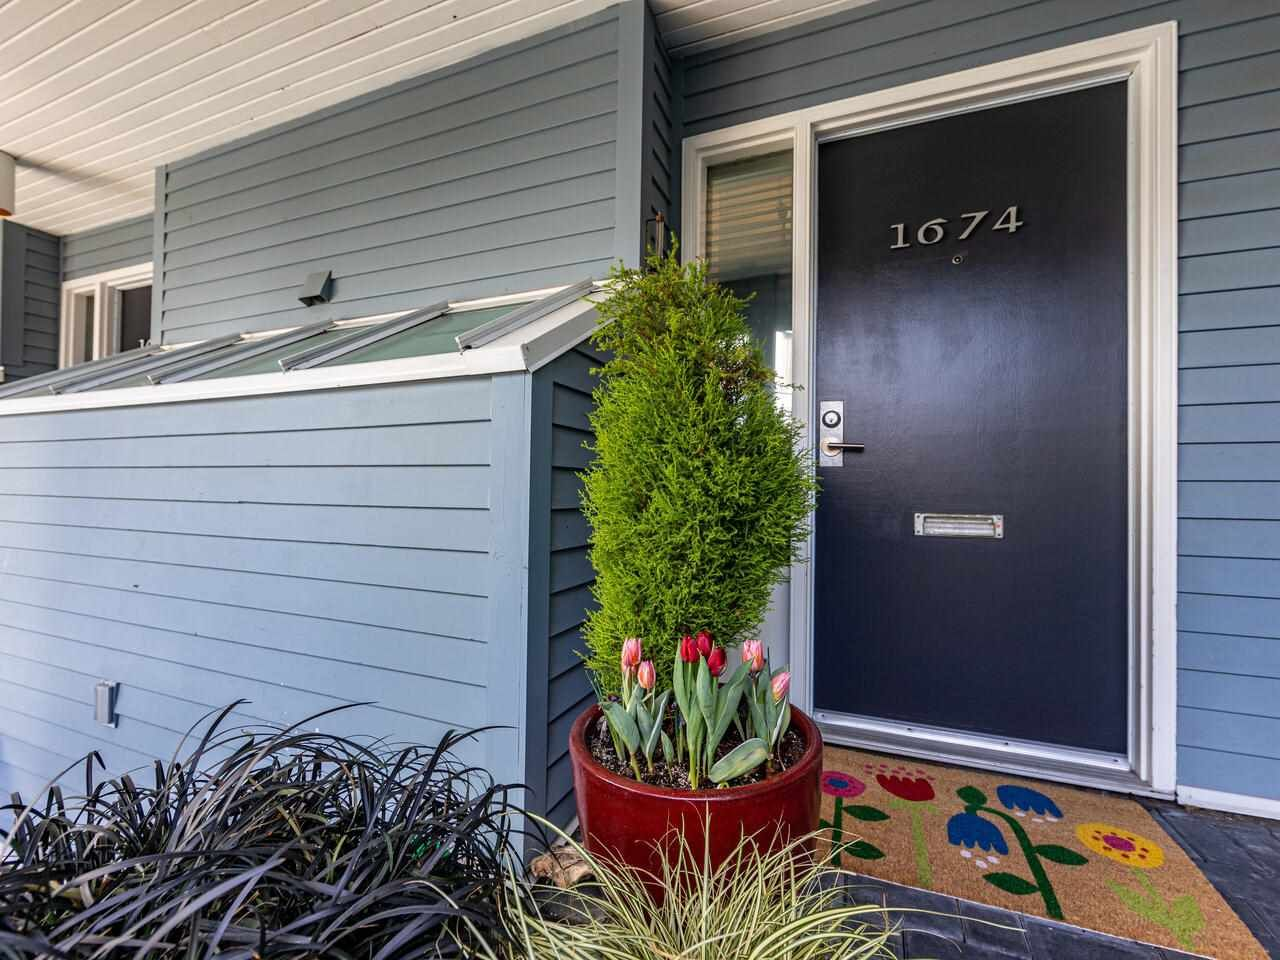 """Main Photo: 1674 ARBUTUS Street in Vancouver: Kitsilano Townhouse for sale in """"Arbutus Court"""" (Vancouver West)  : MLS®# R2561294"""